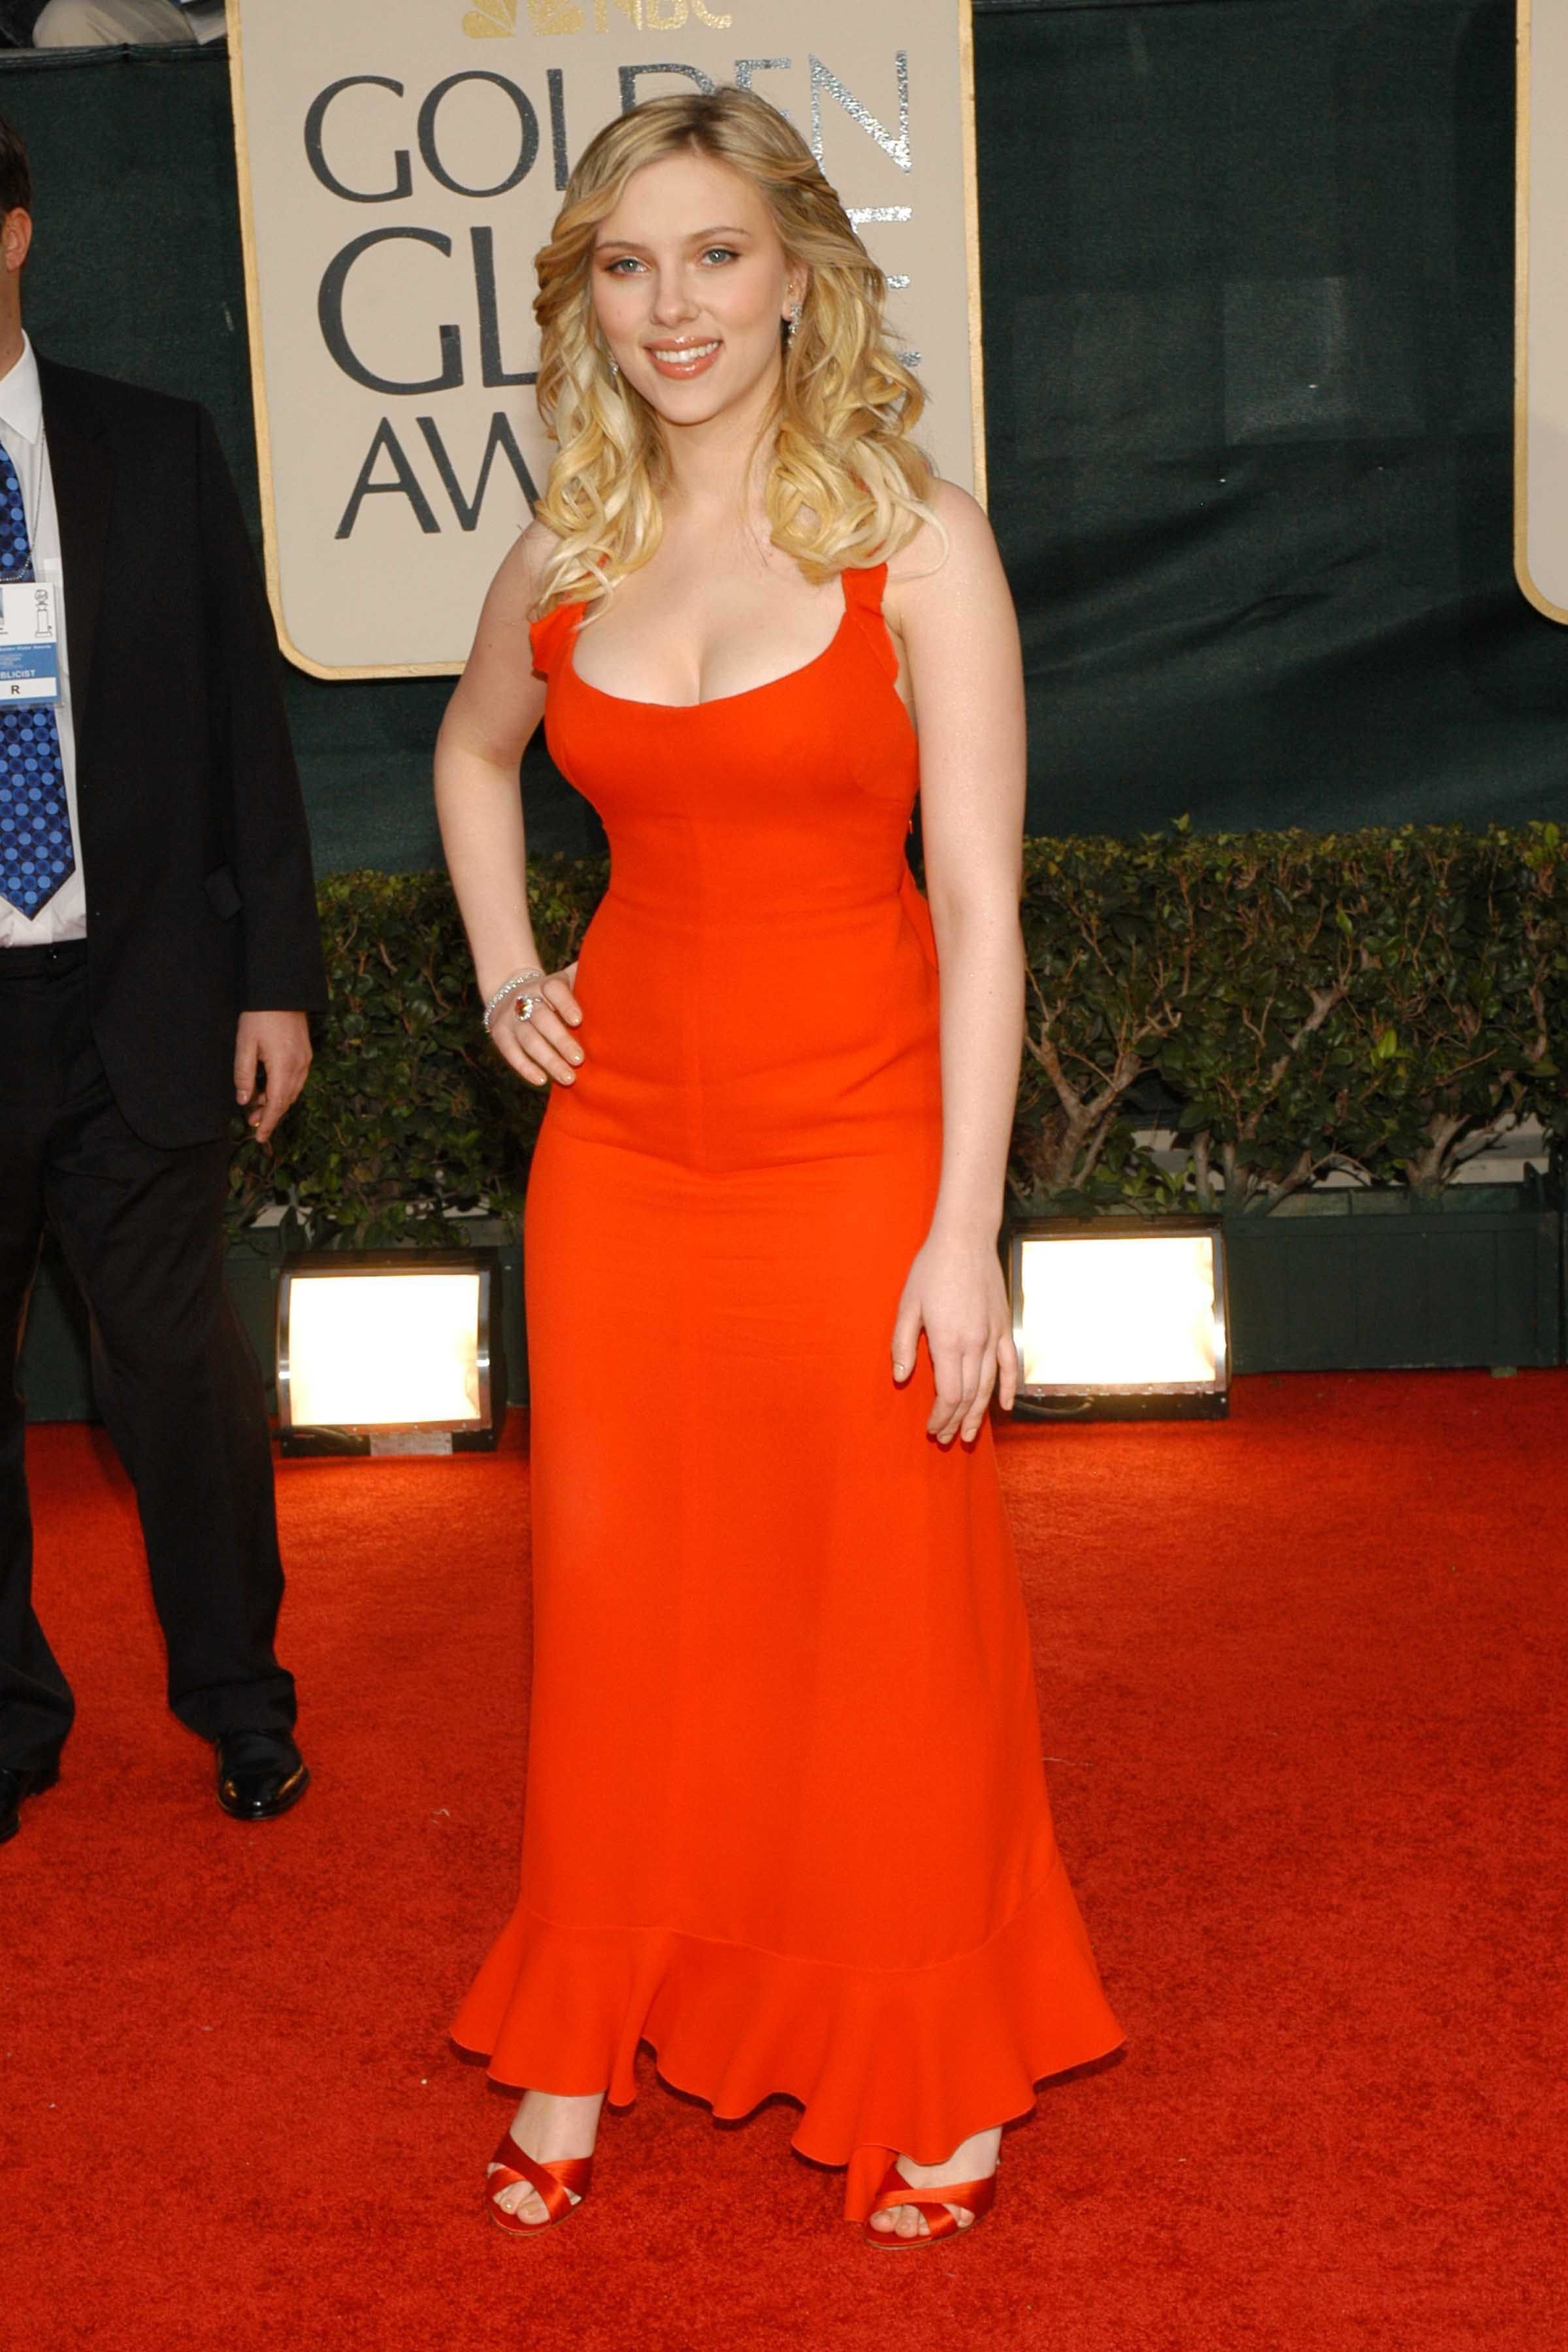 See The Best Golden Globes Dresses Of All Time Scarlett Johansson Scarlet Johansson Golden Globes Dresses [ 3600 x 2400 Pixel ]